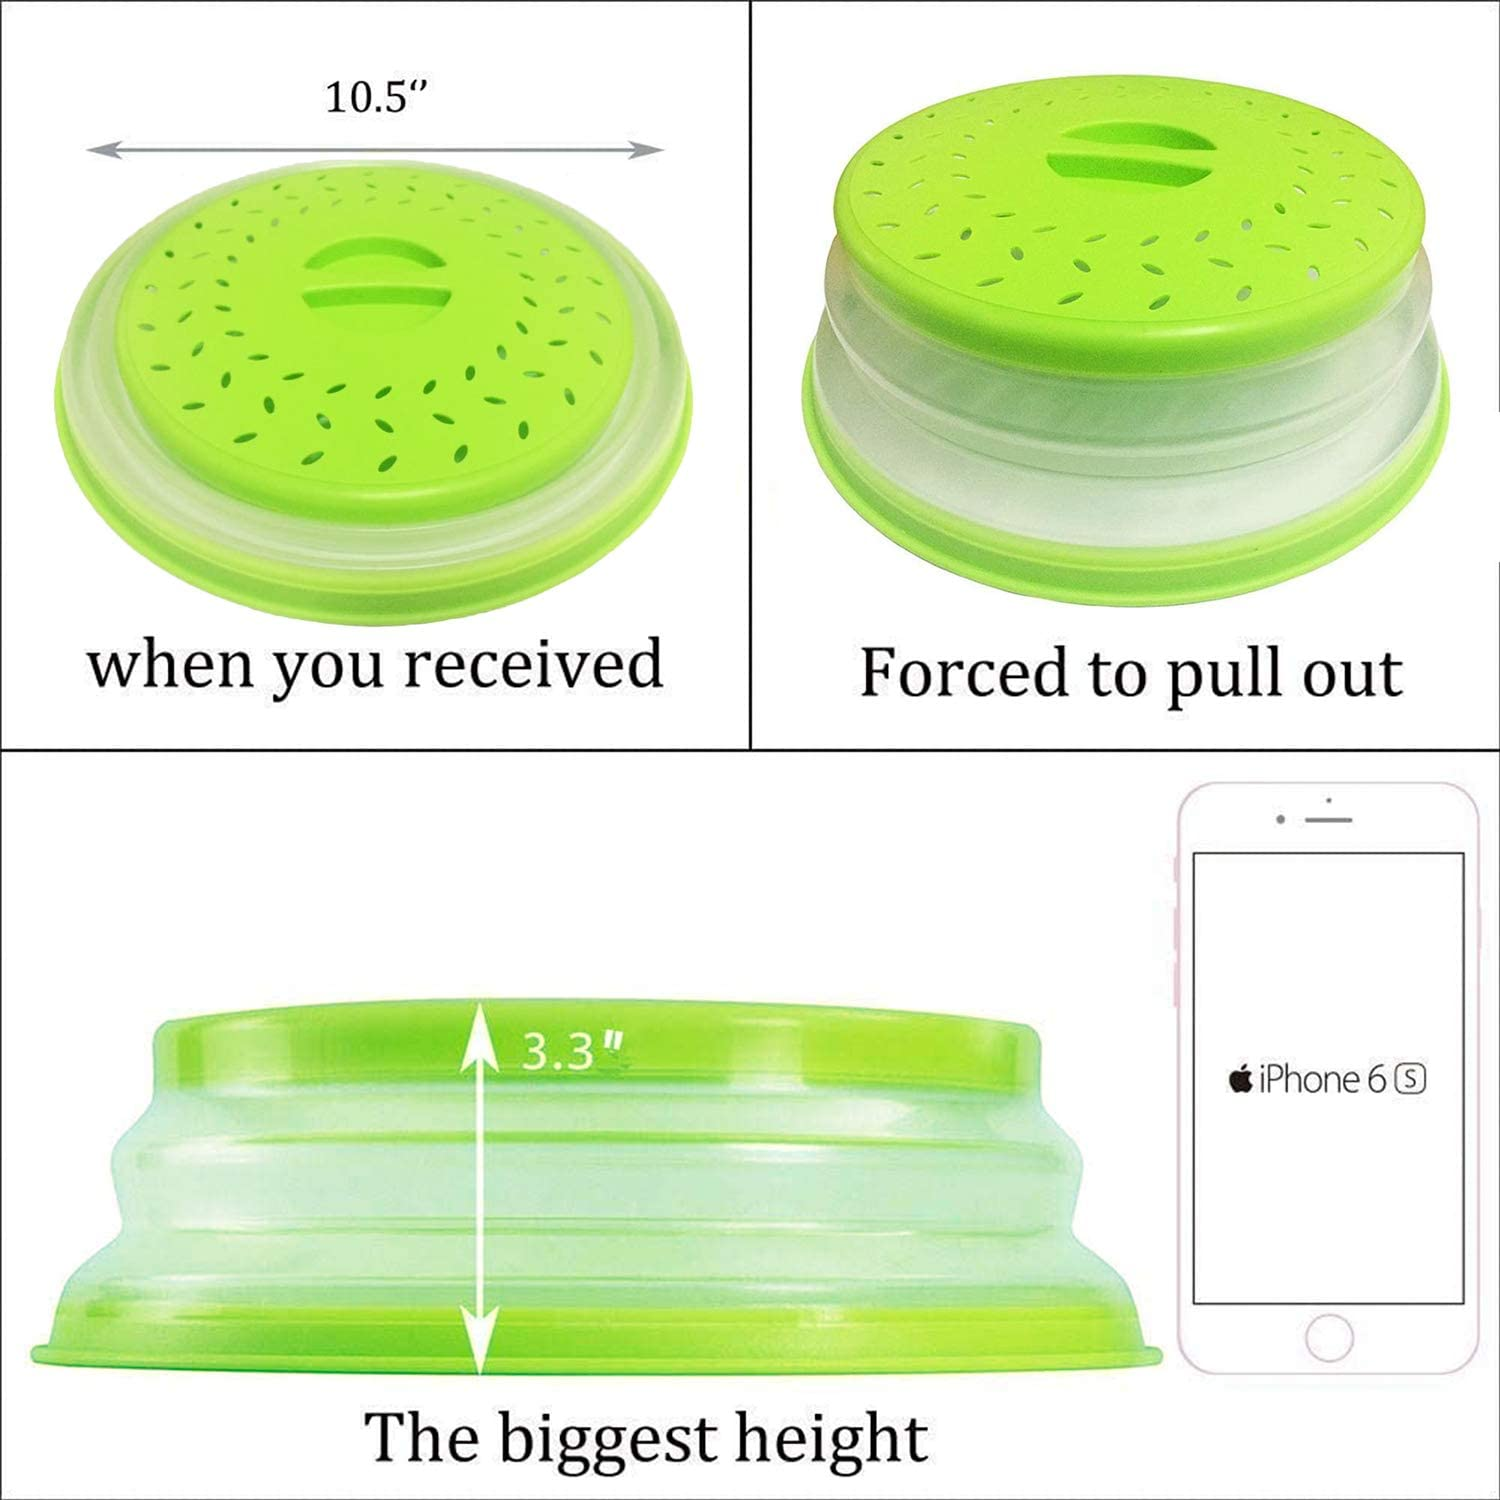 Vented Collapsible Microwave Splatter Cover for Food,Kitchen dish bowl Plate lid Can be Hung,Dishwasher-Safe,Fruit Drainer Basket,BPA-Free Silicone /& Plastic,Blue